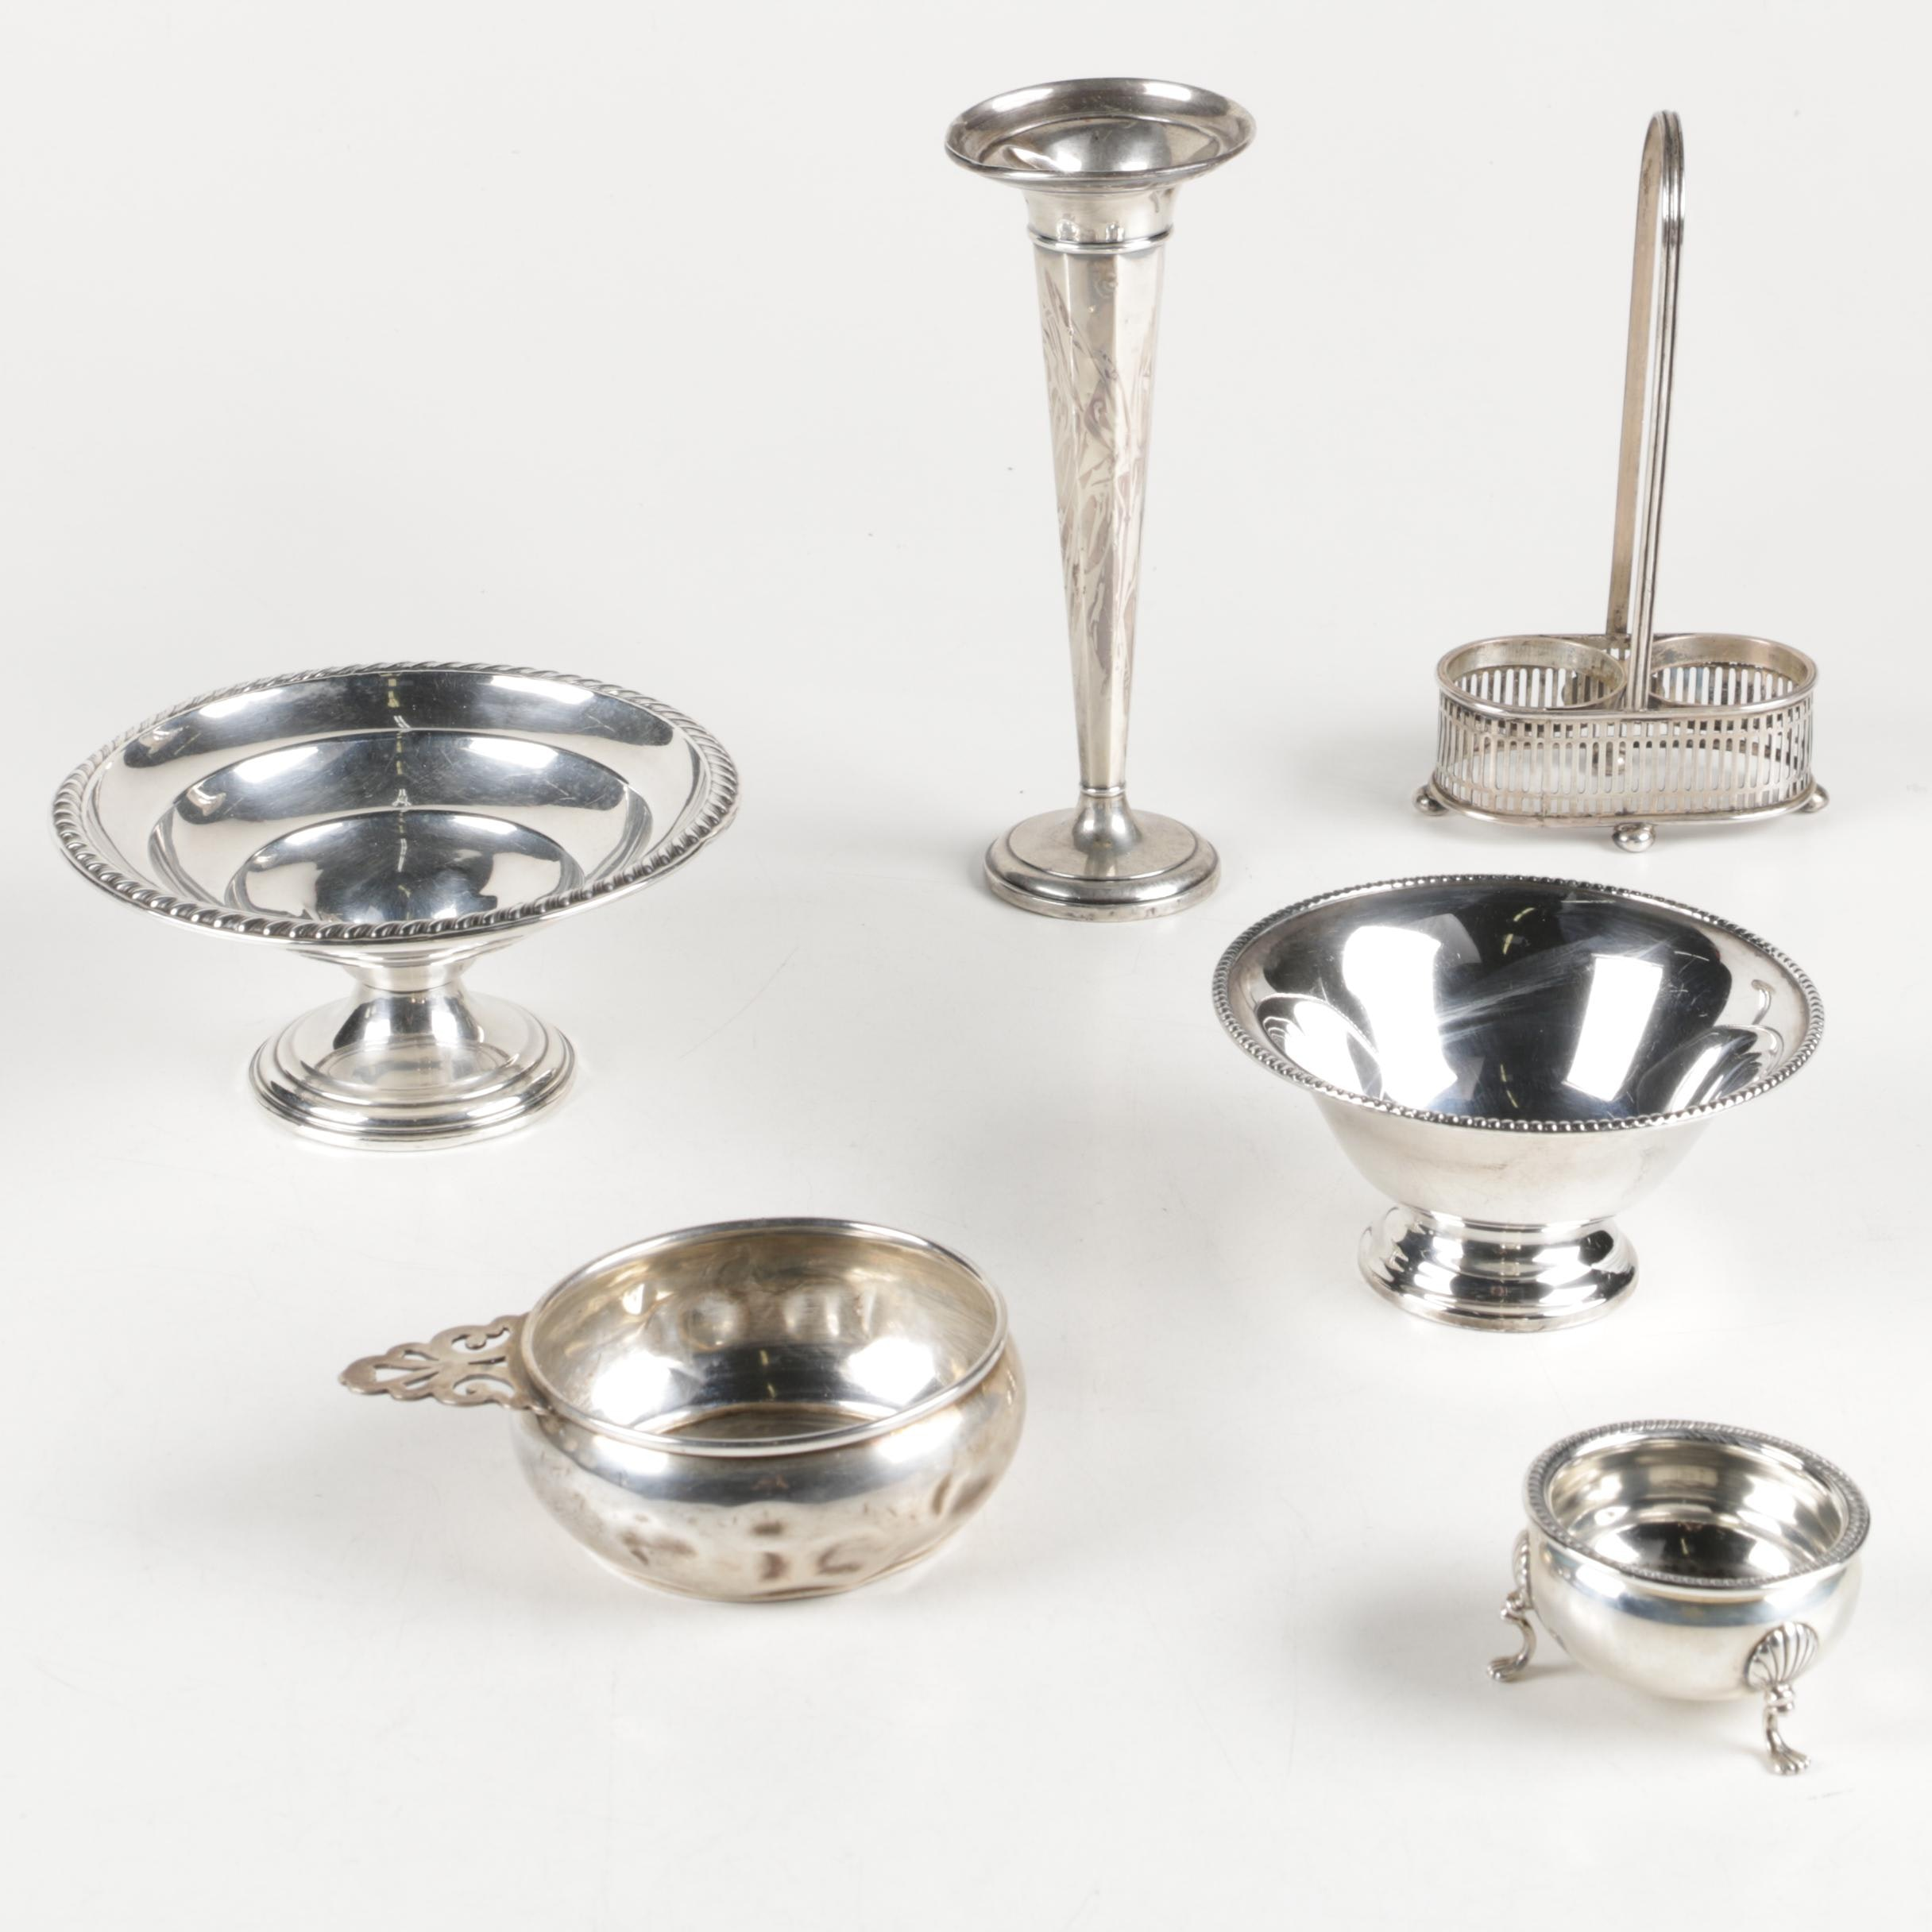 M. Fred Hirsch Co. Shell Salt Cellar, Wallace Porringer, and Other Sterling